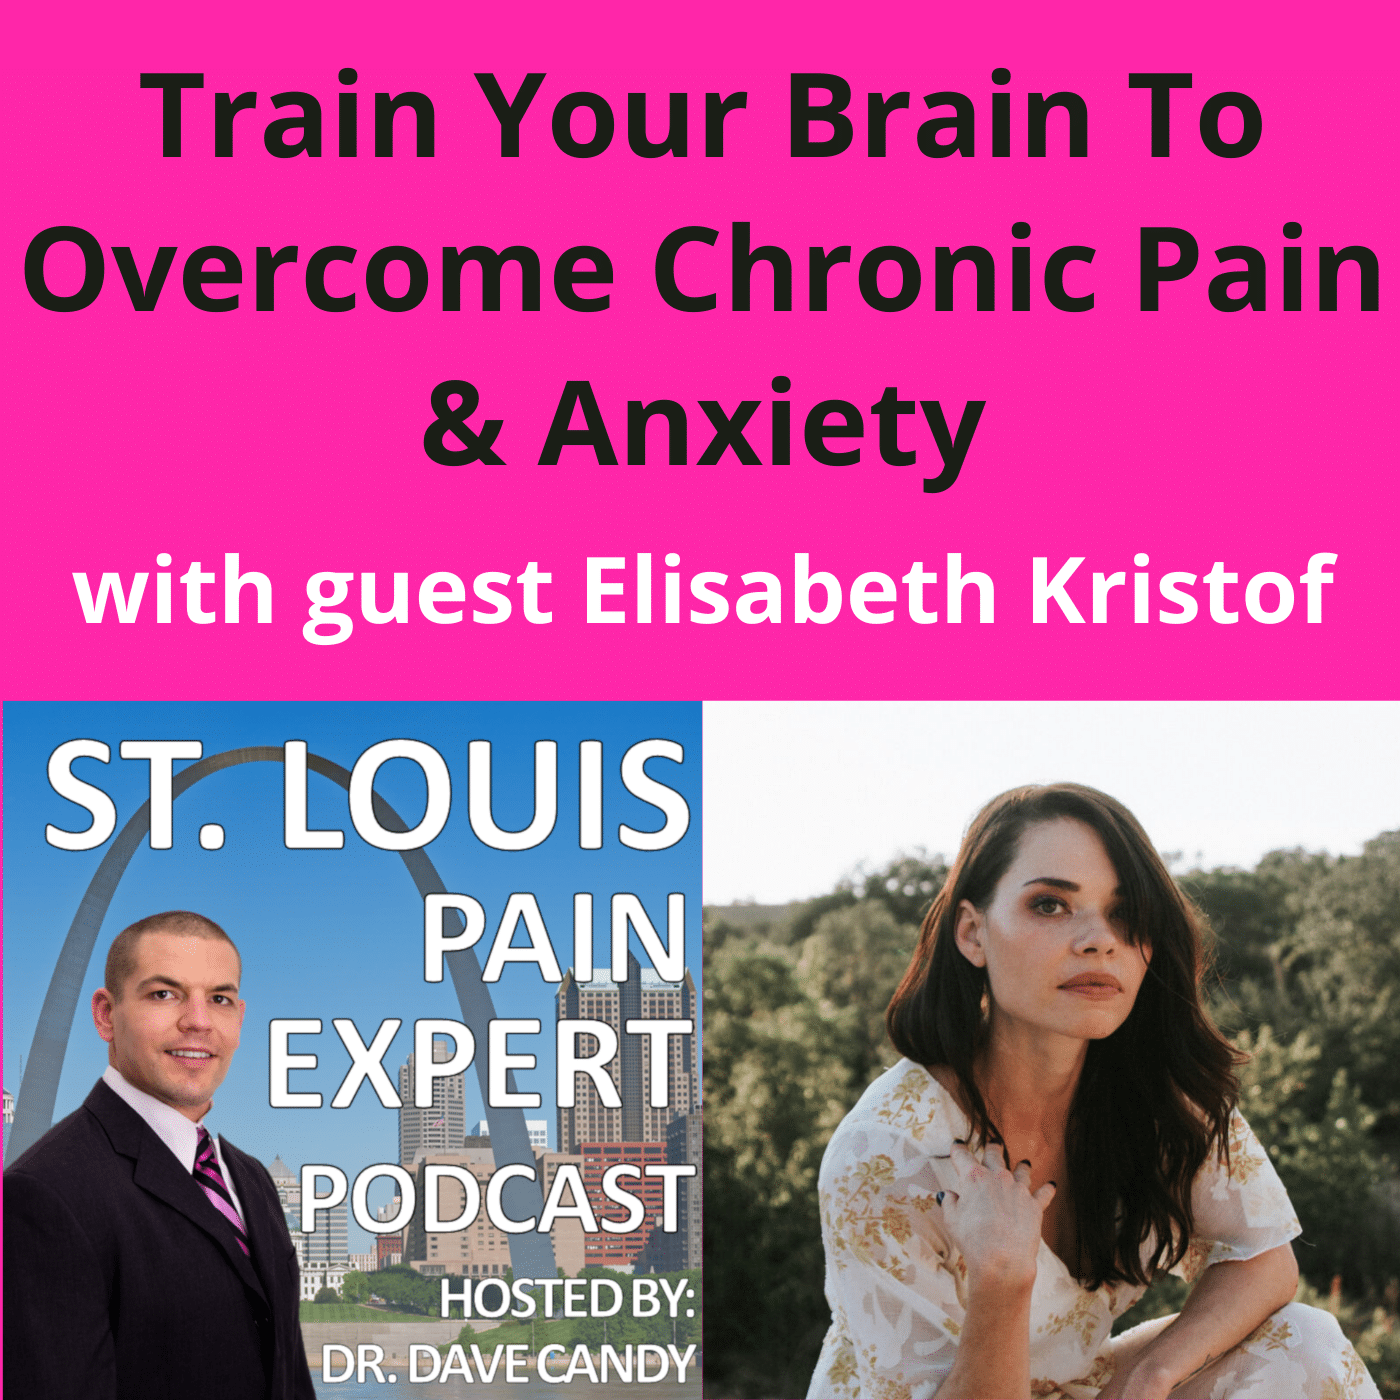 St. Louis Pain Expert Podcast Train Your Brain To Overcome Chronic Pain with guest Elisabeth Kristof